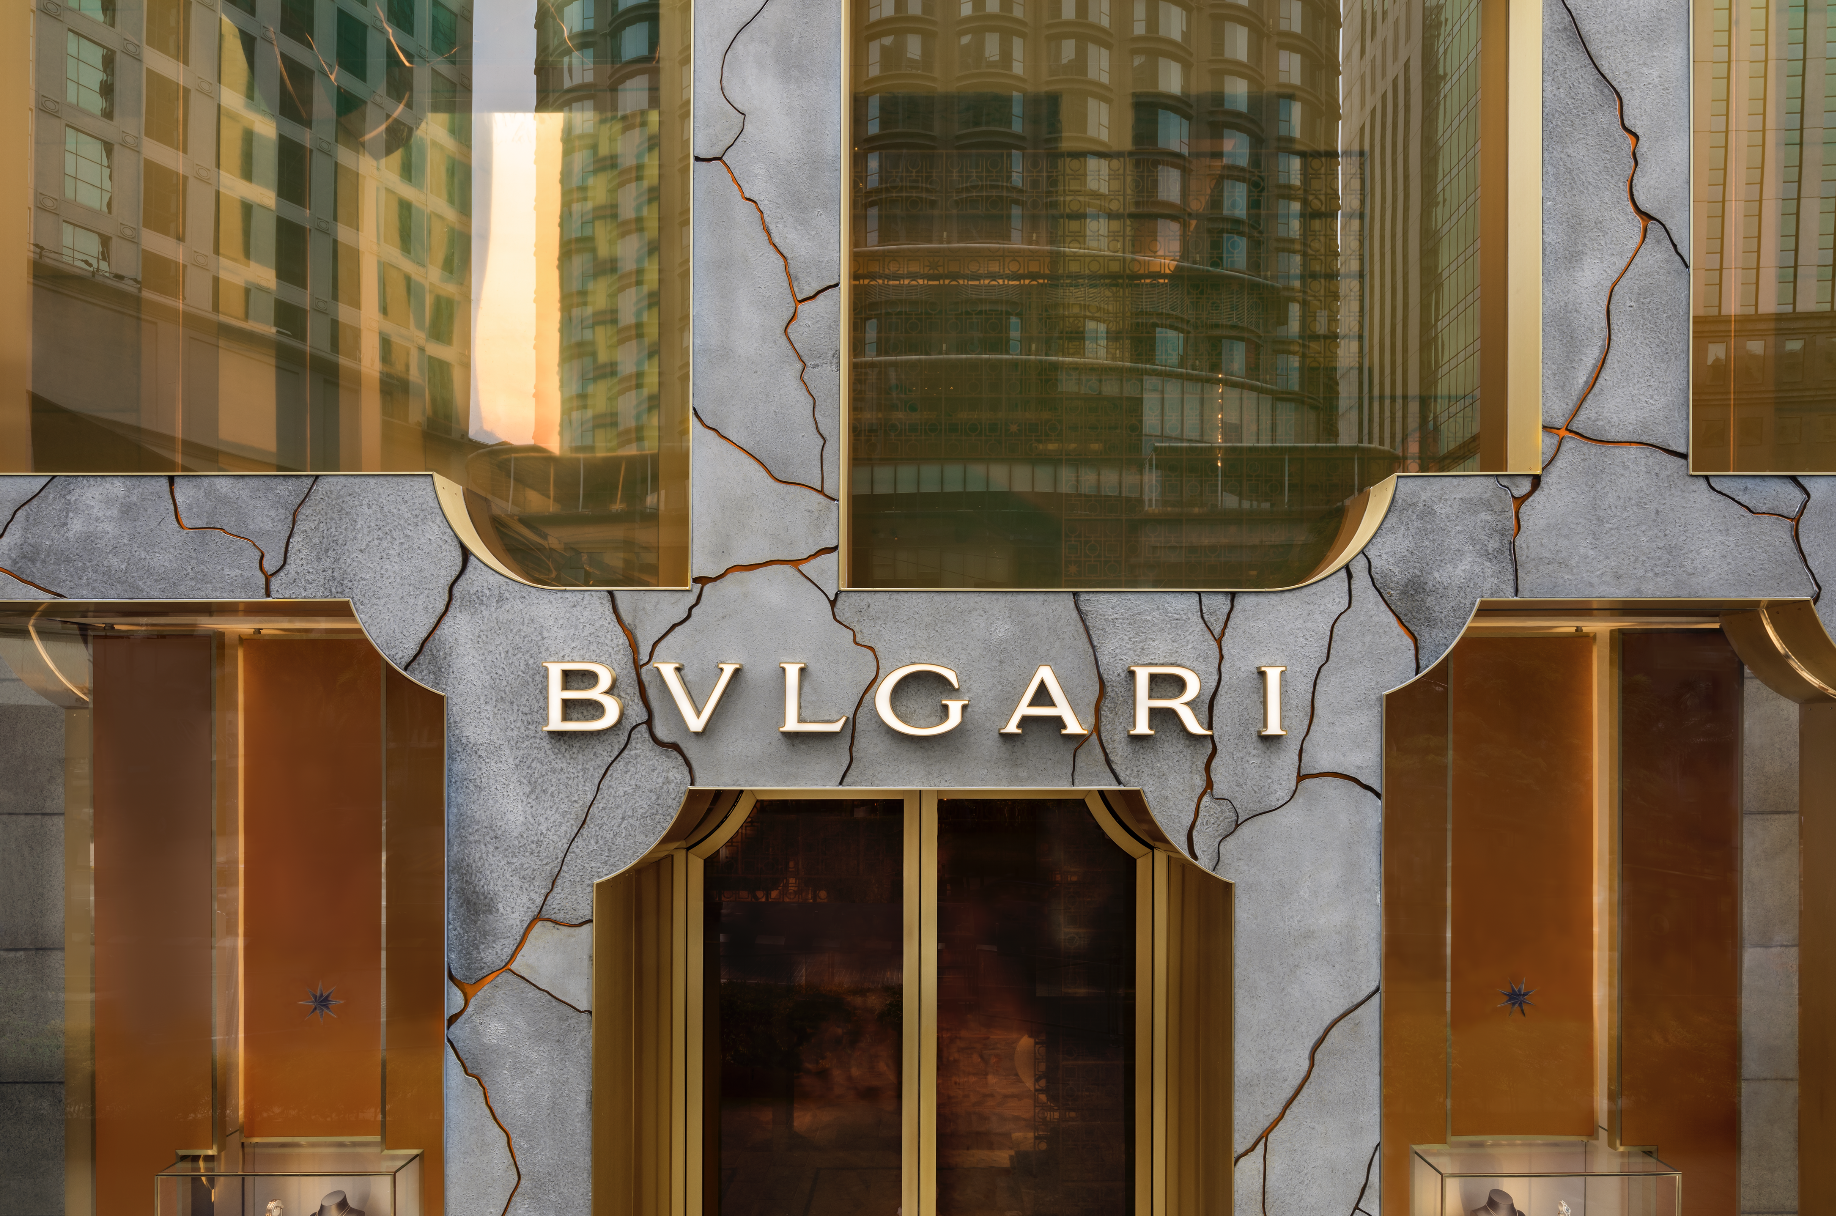 Bvlgari Pavilion KL becomes the first store in Malaysia to win the Prix Versailles award